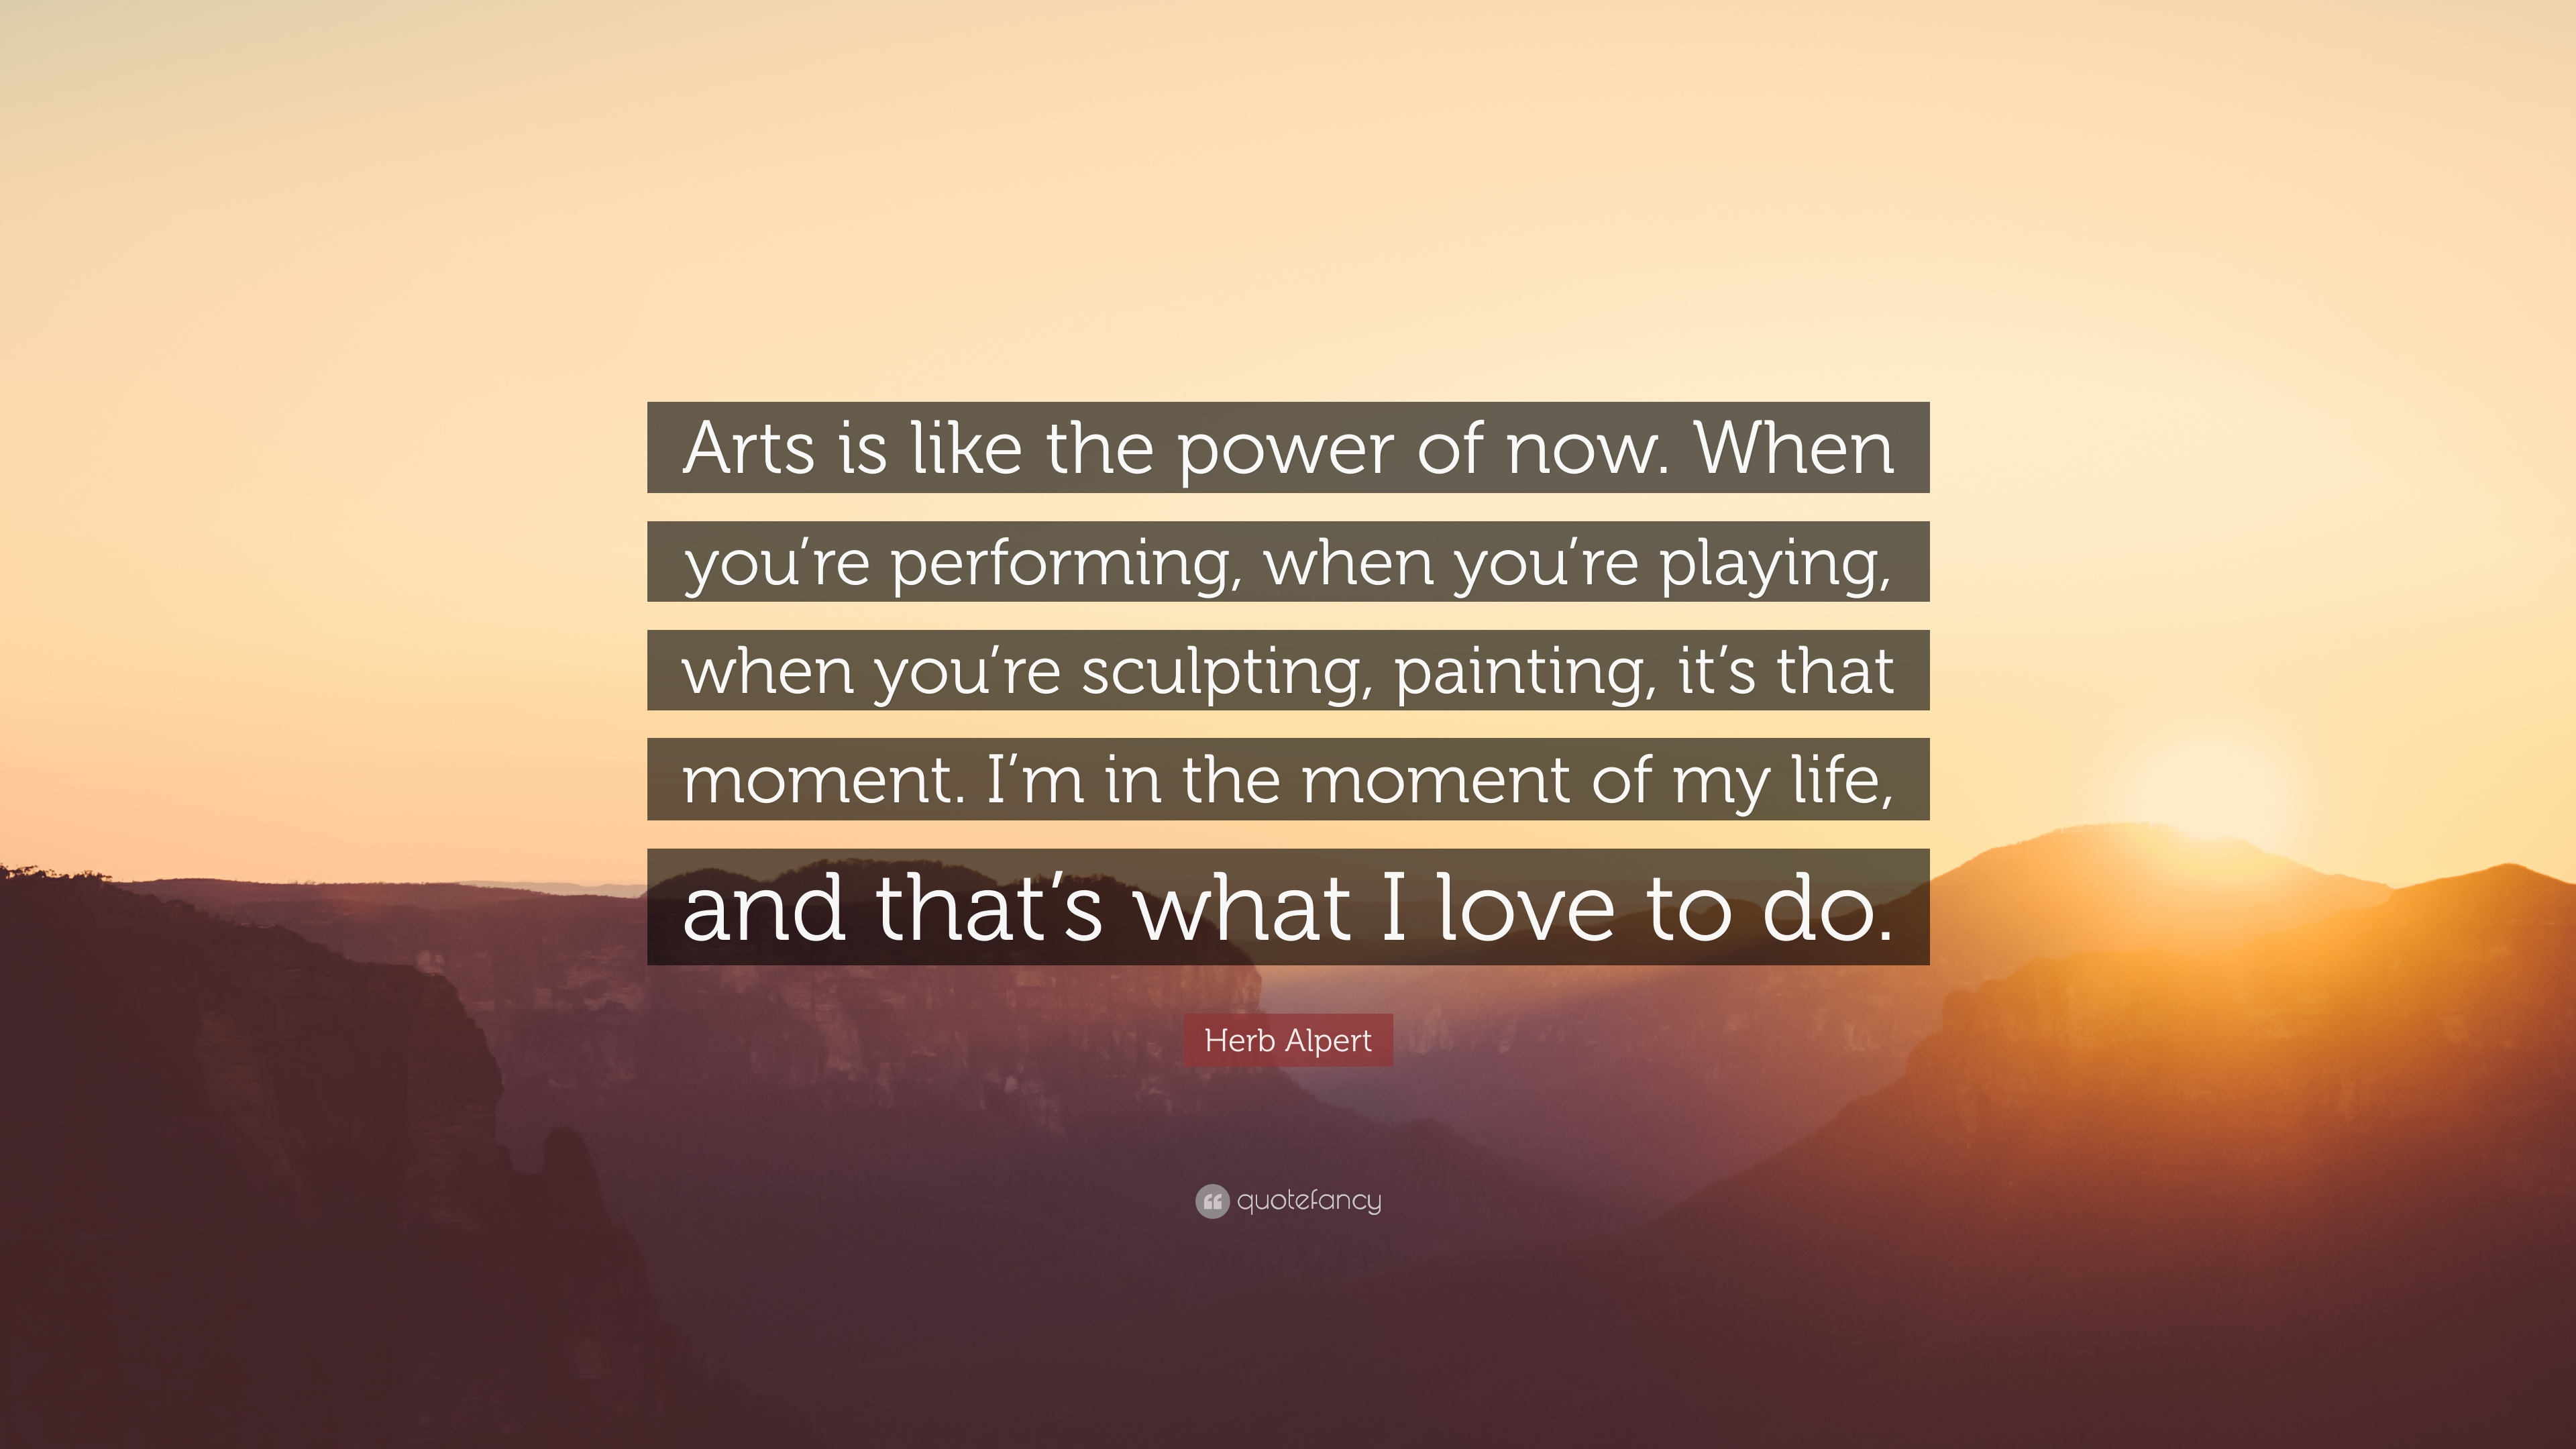 The Power Of Now Quotes Herb Alpert Quotes 23 Wallpapers  Quotefancy